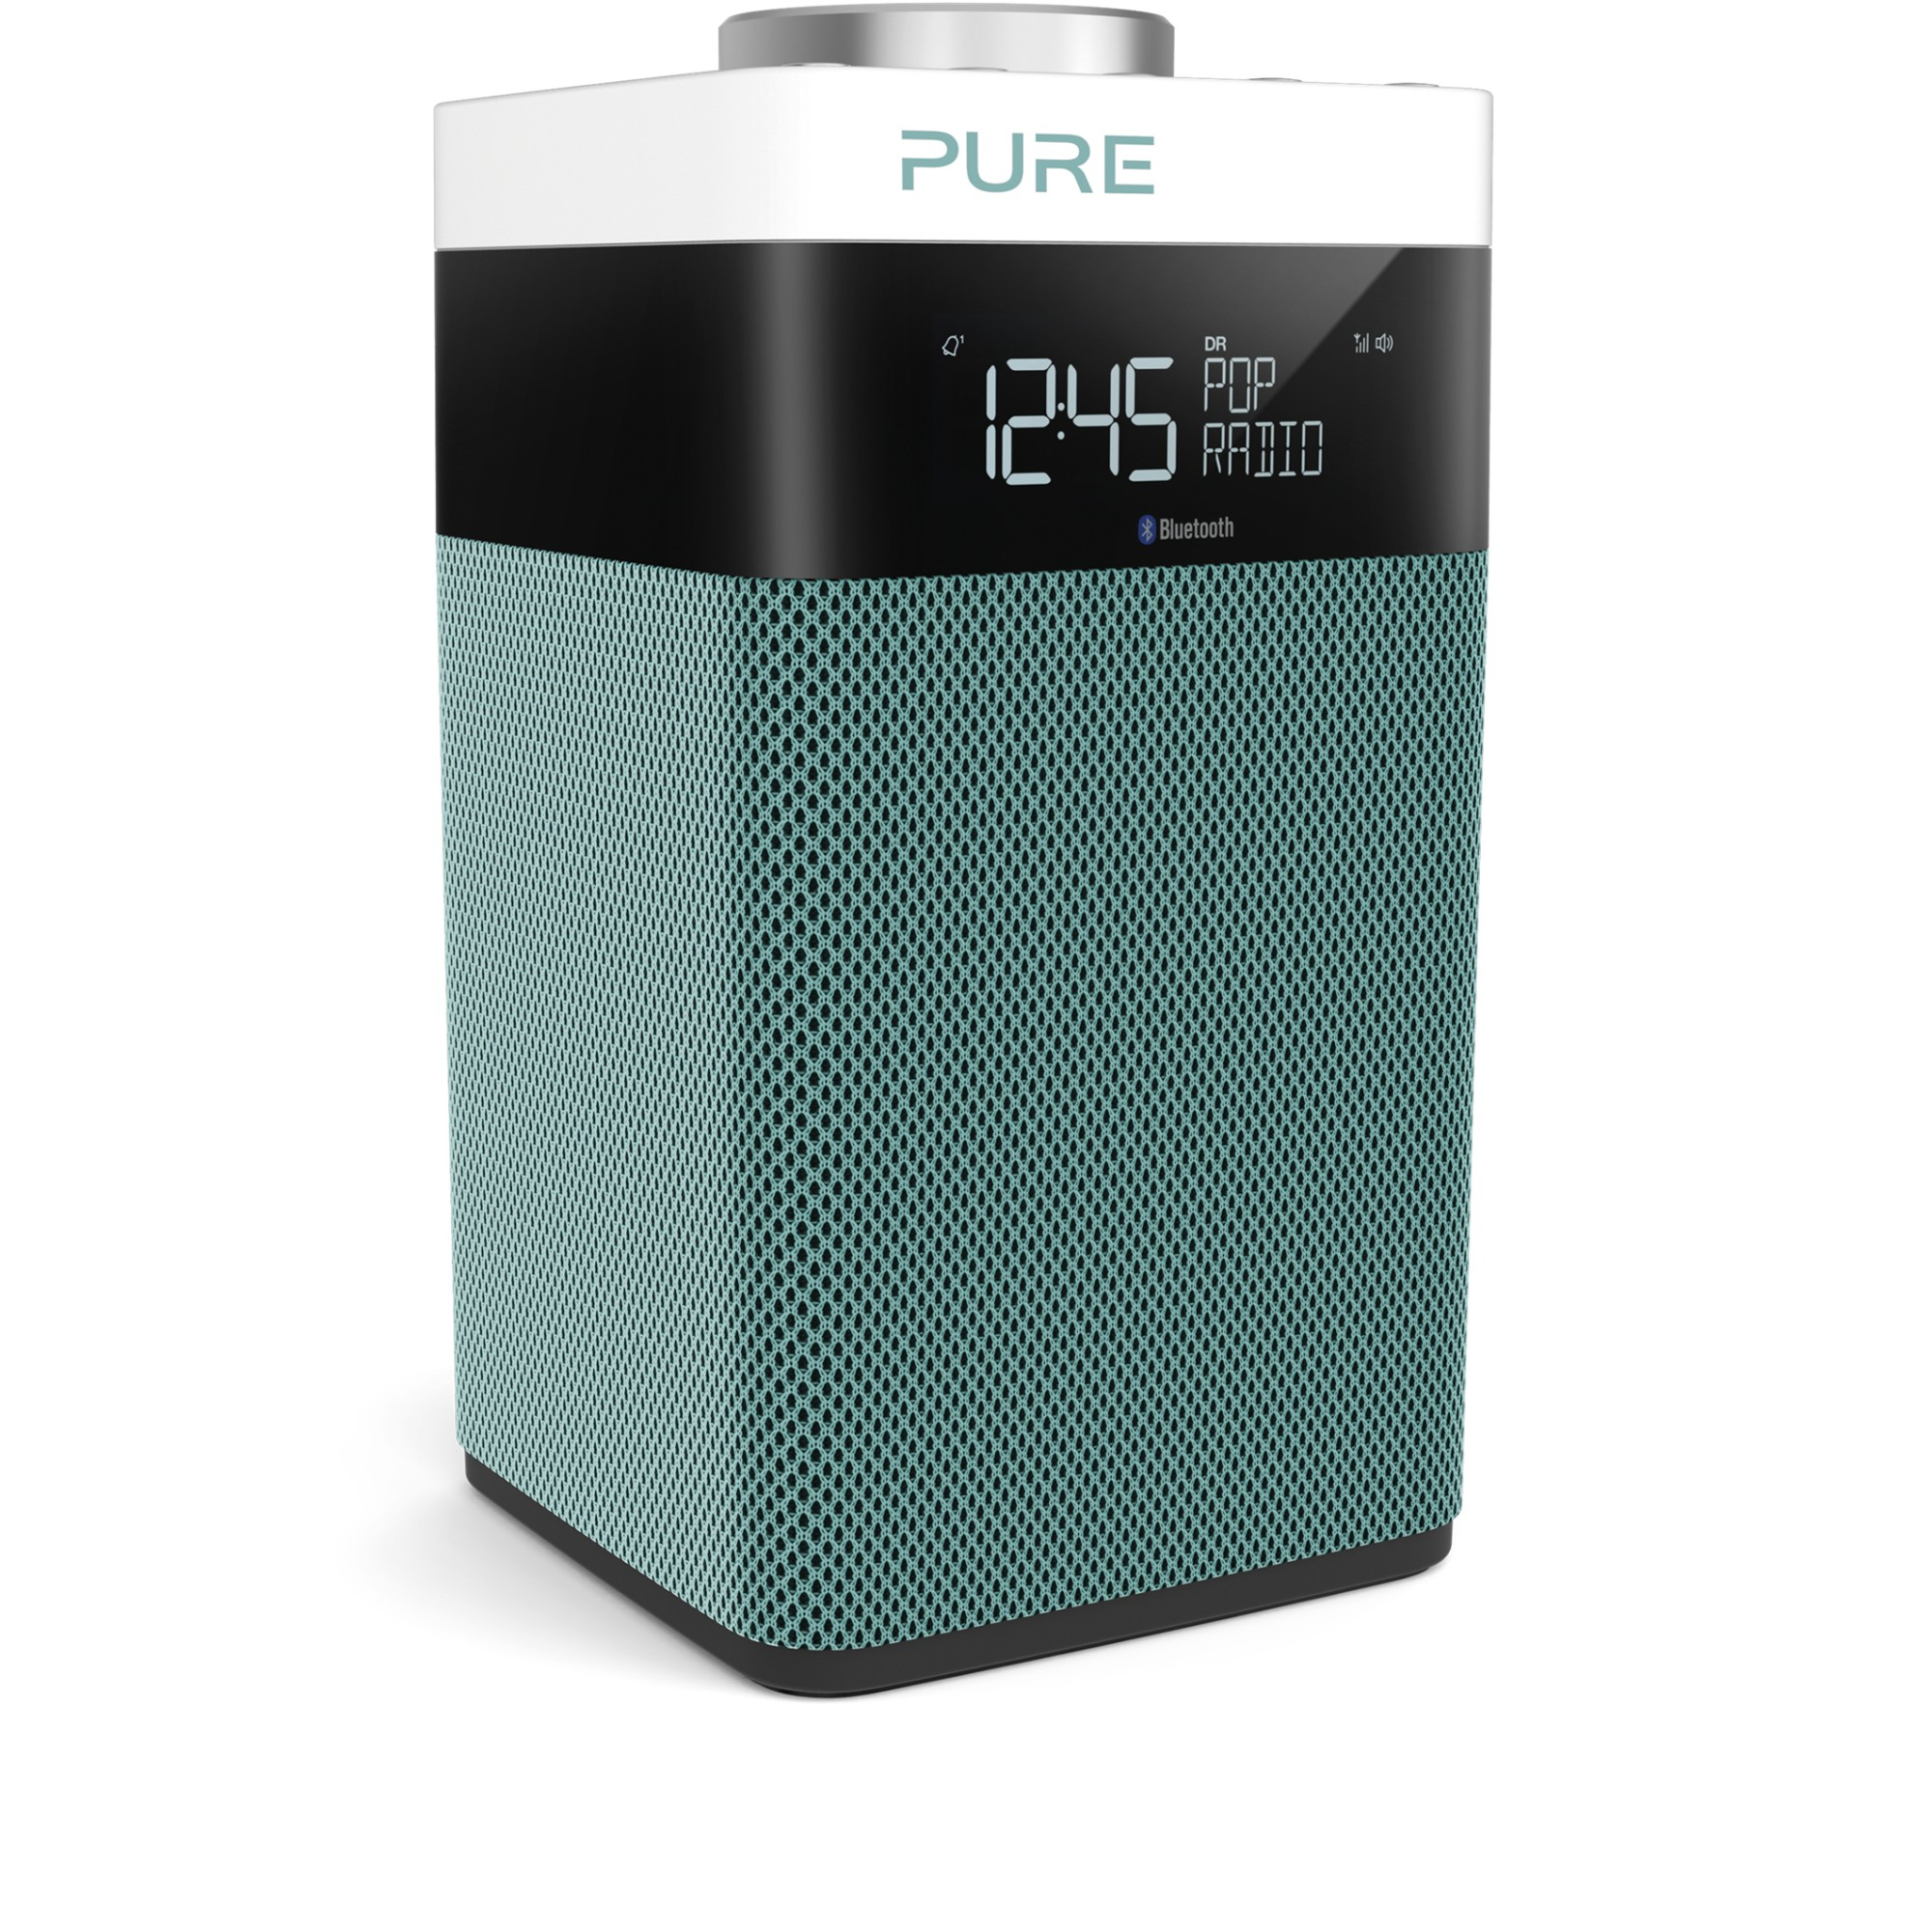 Pure Pop Midi S Portable Digital Black, Mint colour radio